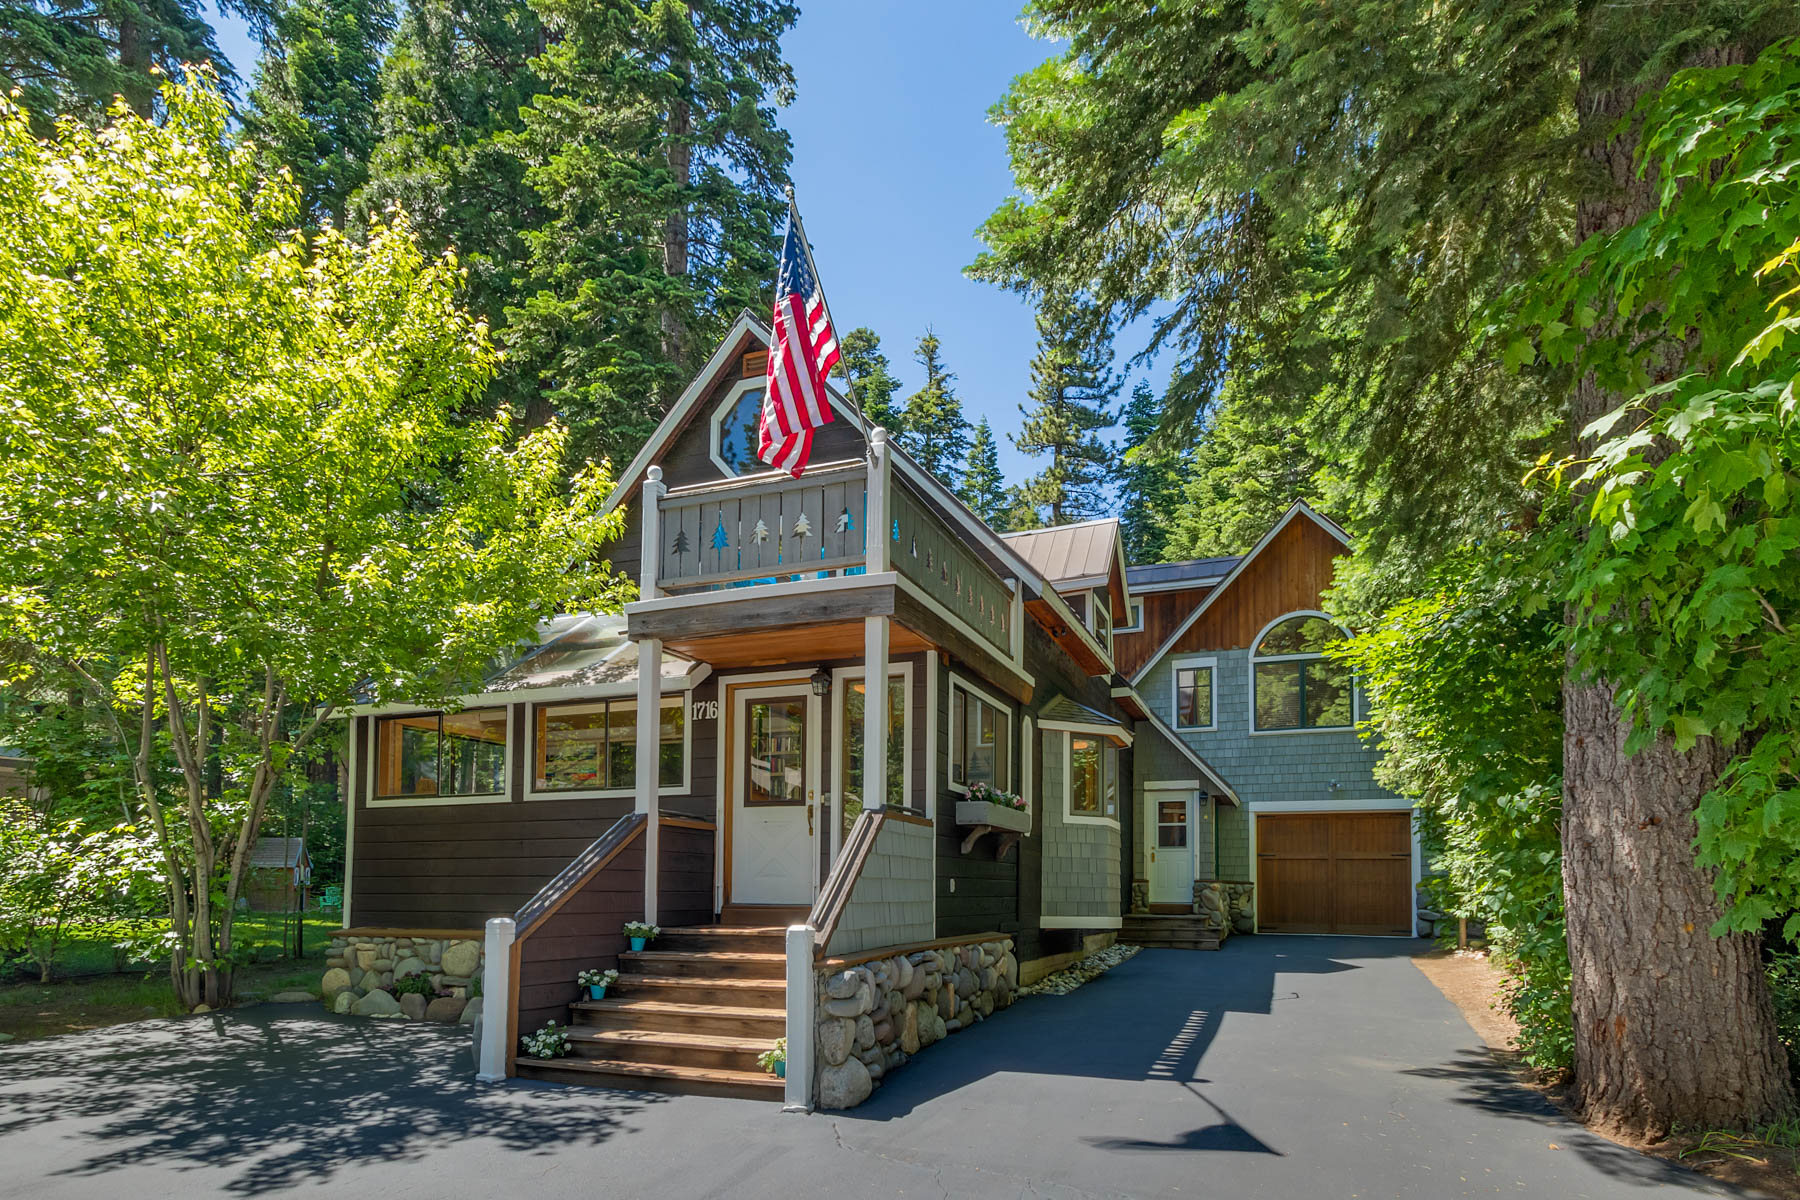 Single Family Homes for Active at 1716 Willow Avenue, Tahoe City, CA 1716 Willow Avenue Tahoe City, California 96145 United States